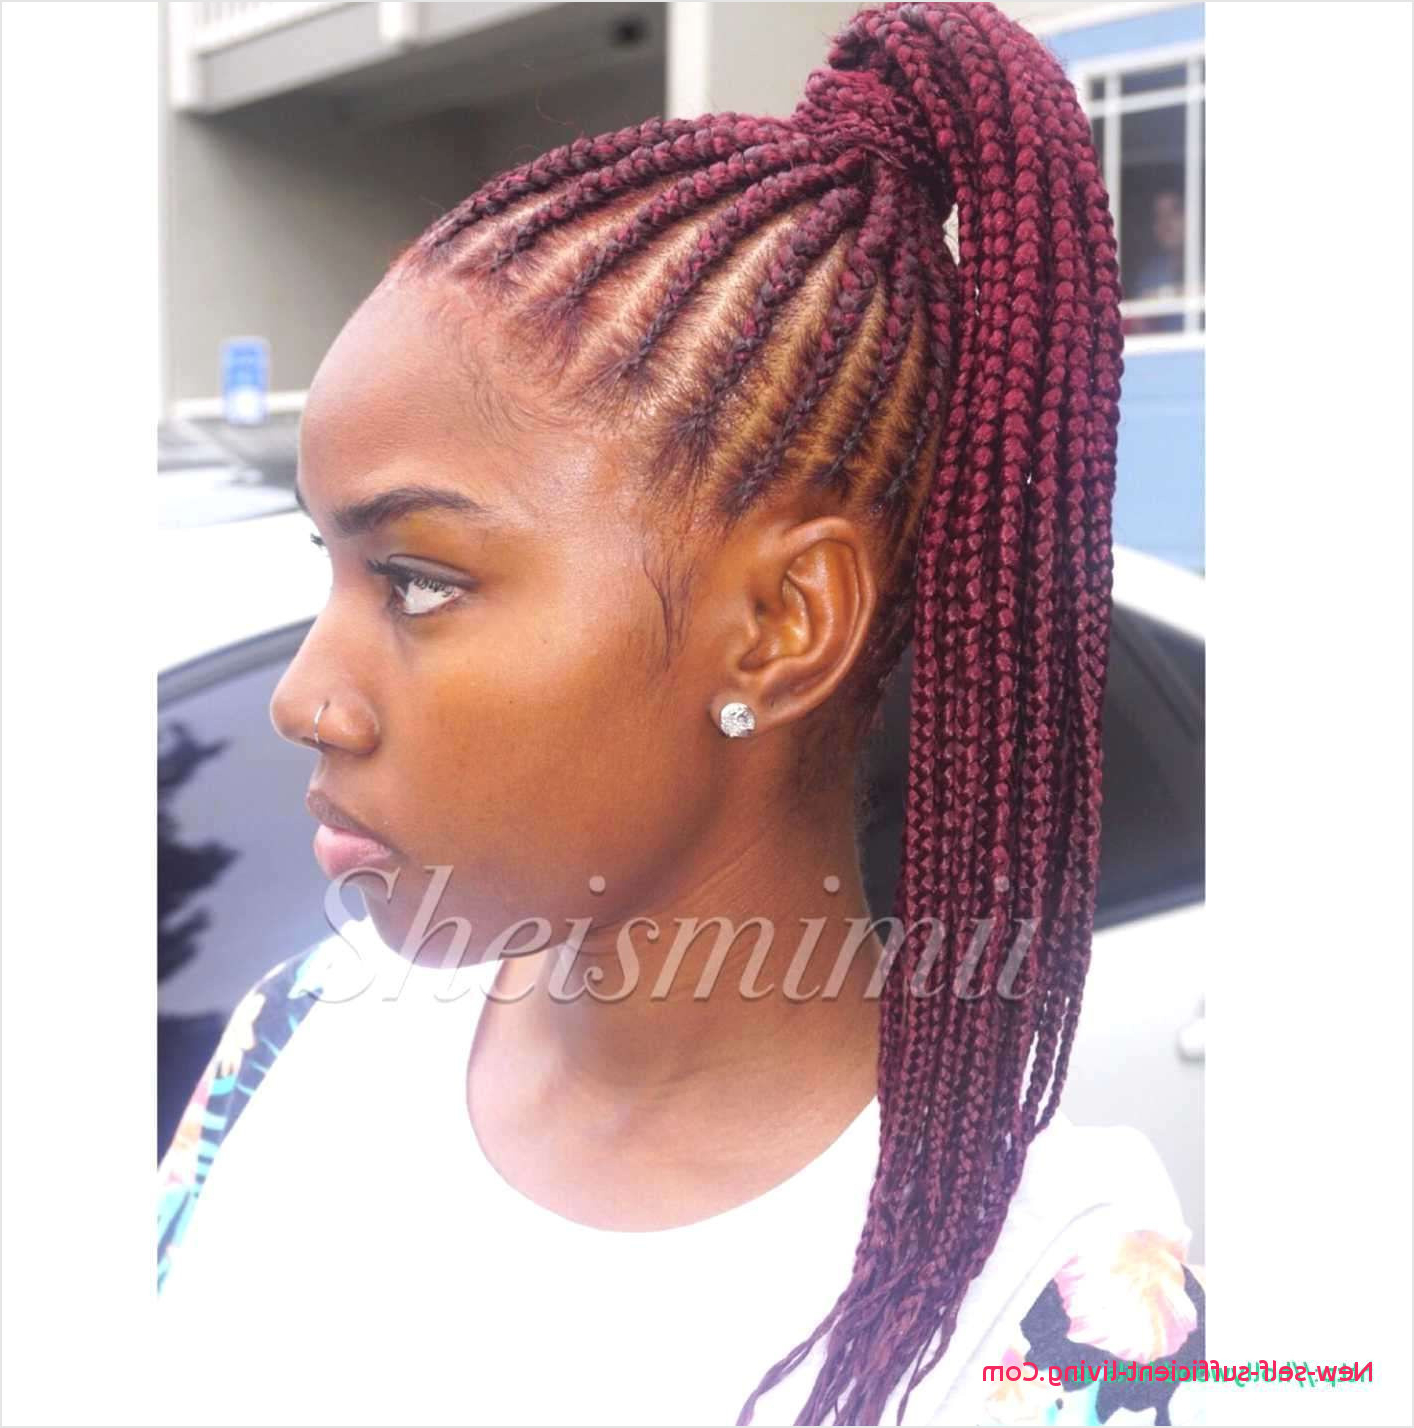 Hairstyles : Cornrows Braided Hairstyles Most Amazing New With Regard To Recent Cornrow Braided Bun Hairstyles (Gallery 10 of 20)